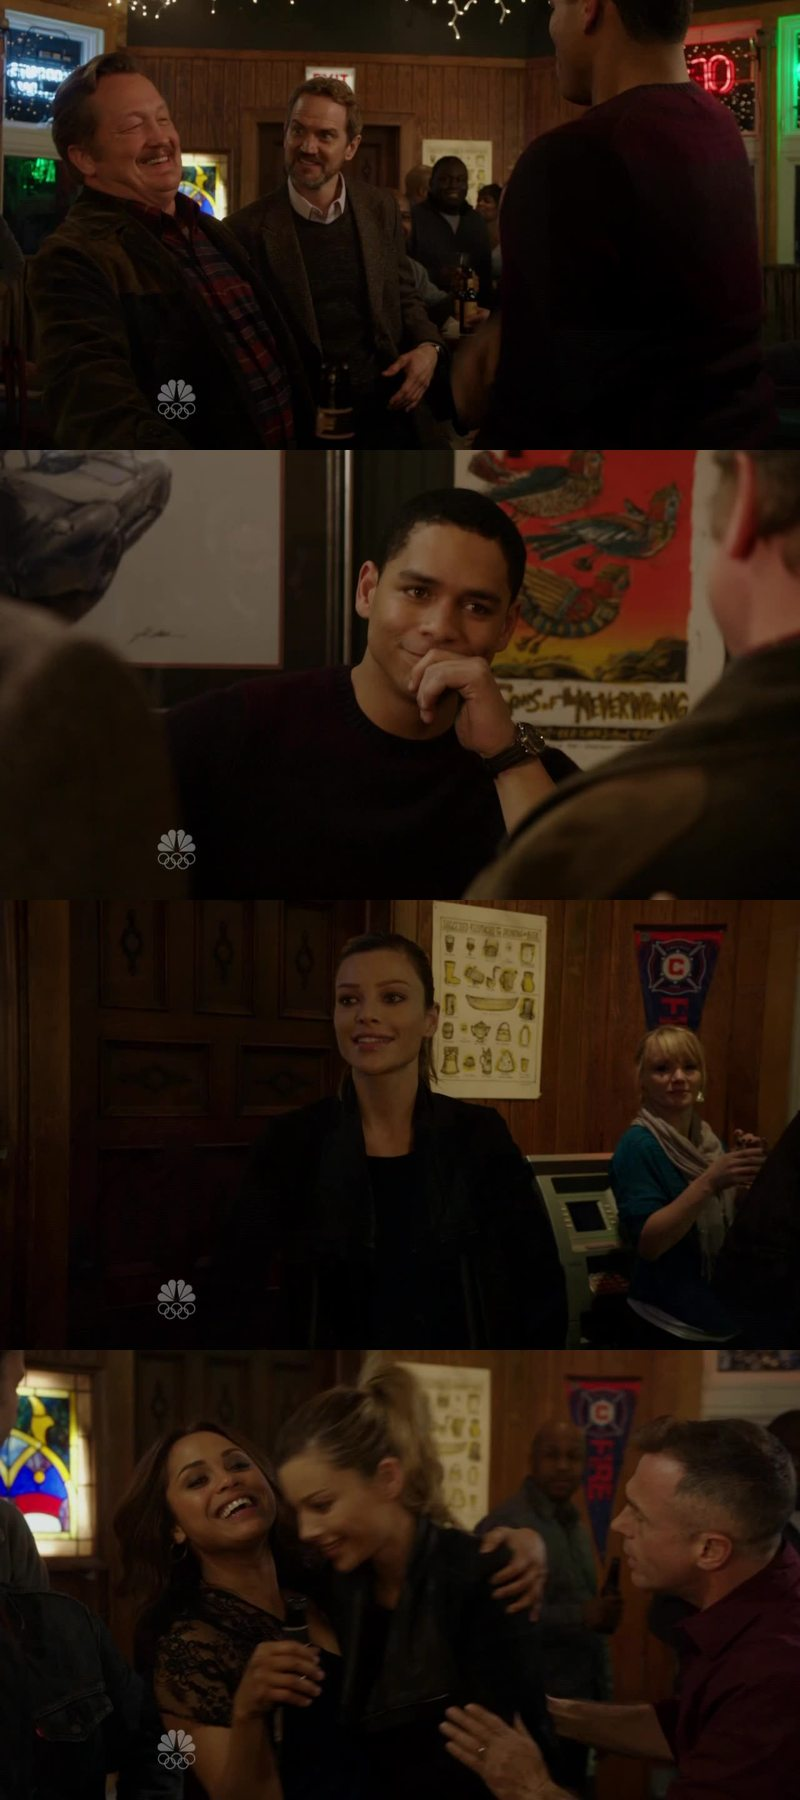 Shay is such a kind person, she is a real friend! She saved the day (or night in that case!) she's also understand more of her new partner, everyone has a story to tell. Also Katie and Otis, they need to be together, but I love Severide's face towards Otis! At the end when Peter Mills yelled that Boden made fun of him was also very funny! I think Peter Mills and Boden are amazing!